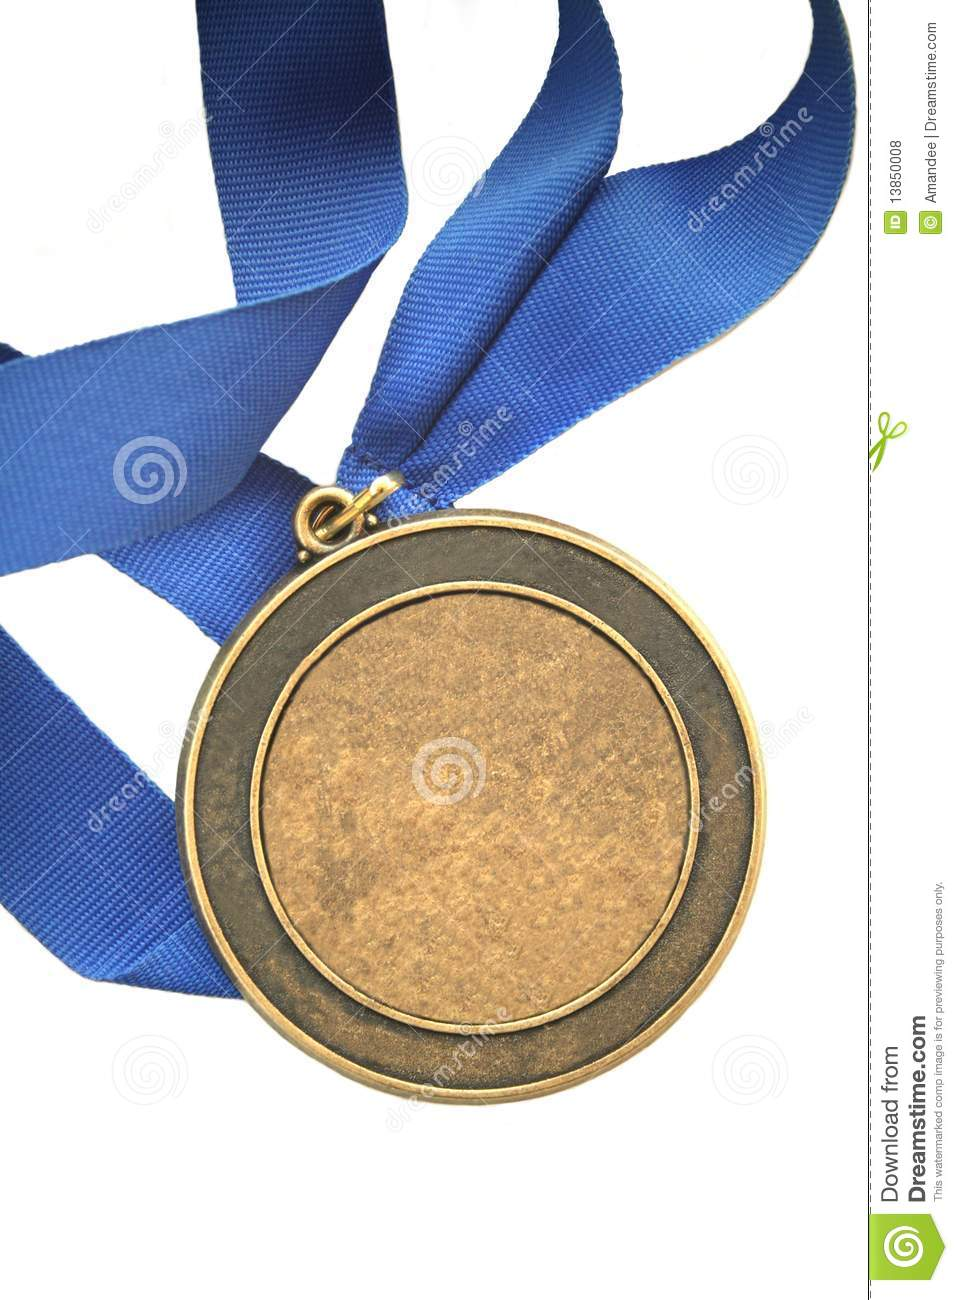 First place champion medal - add your own text